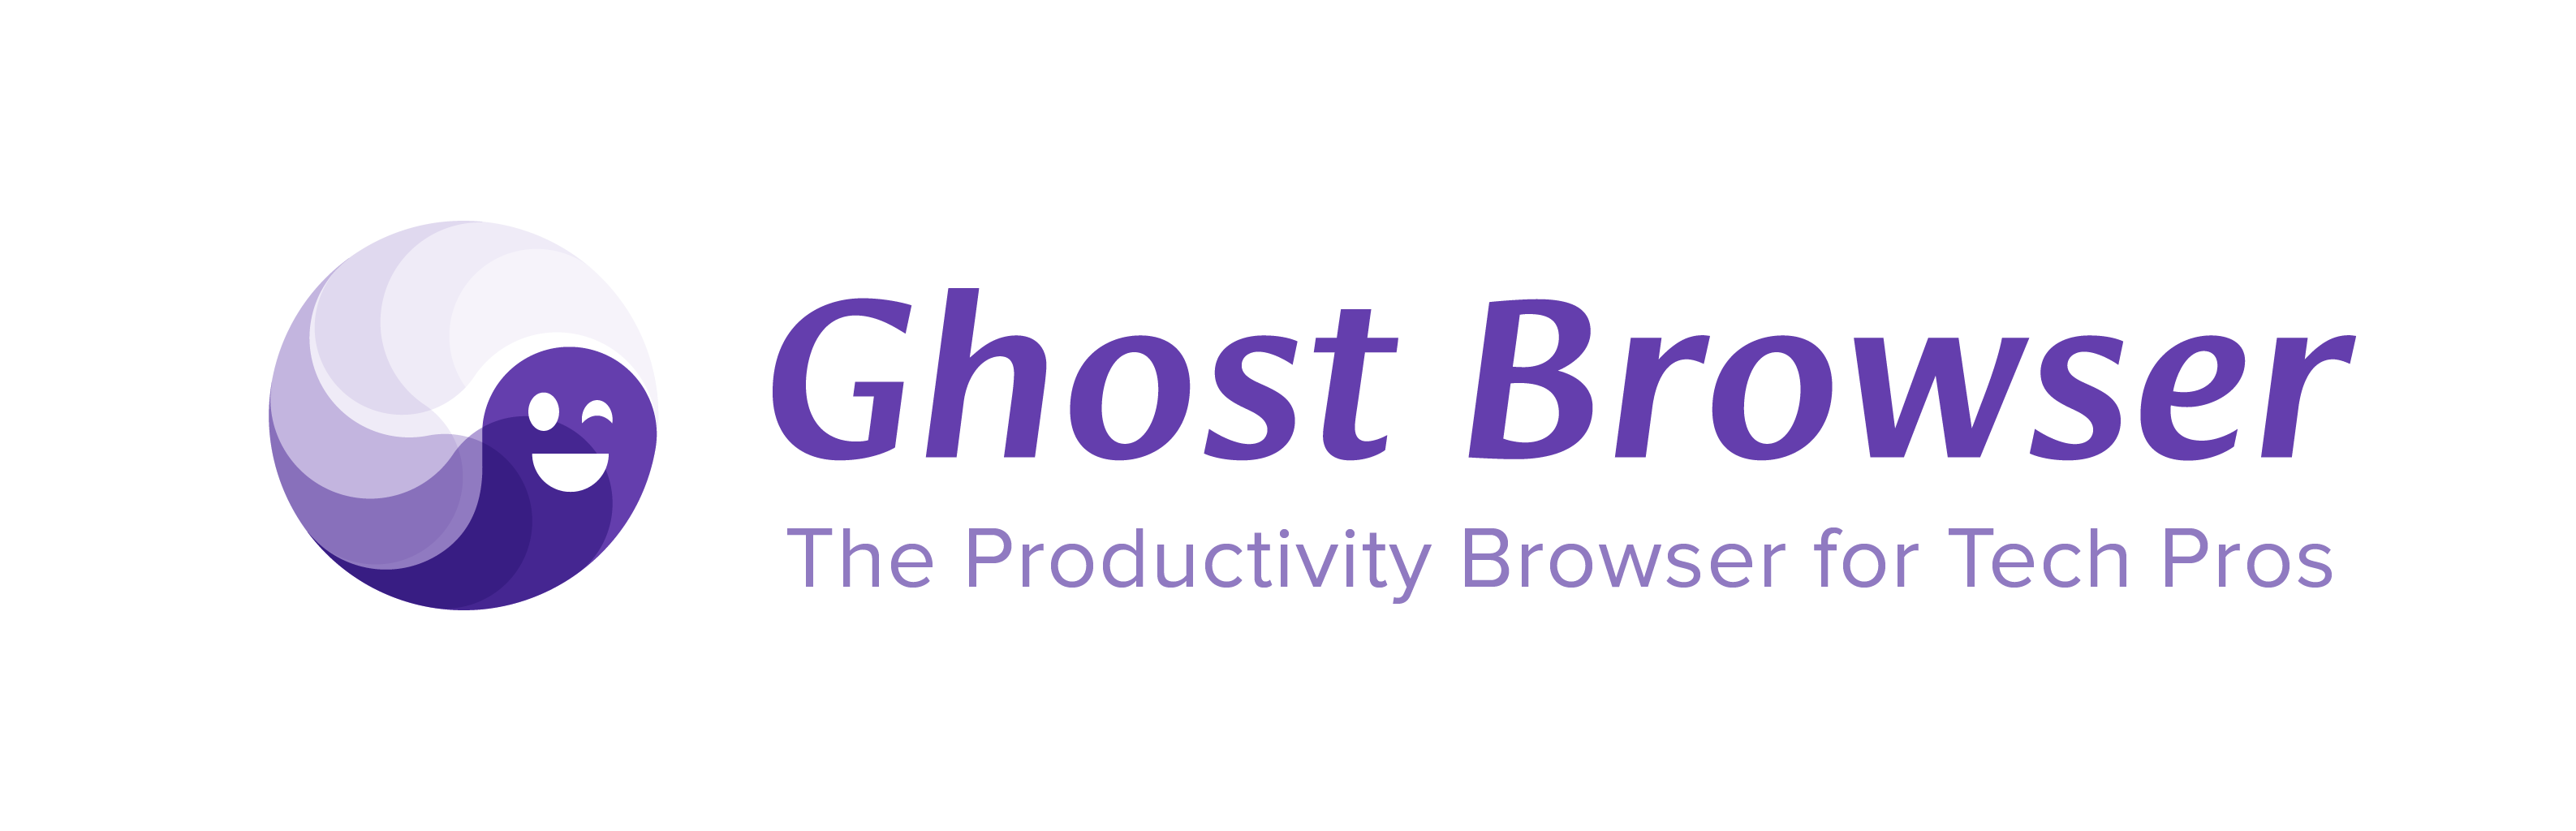 Ghost Browser logo